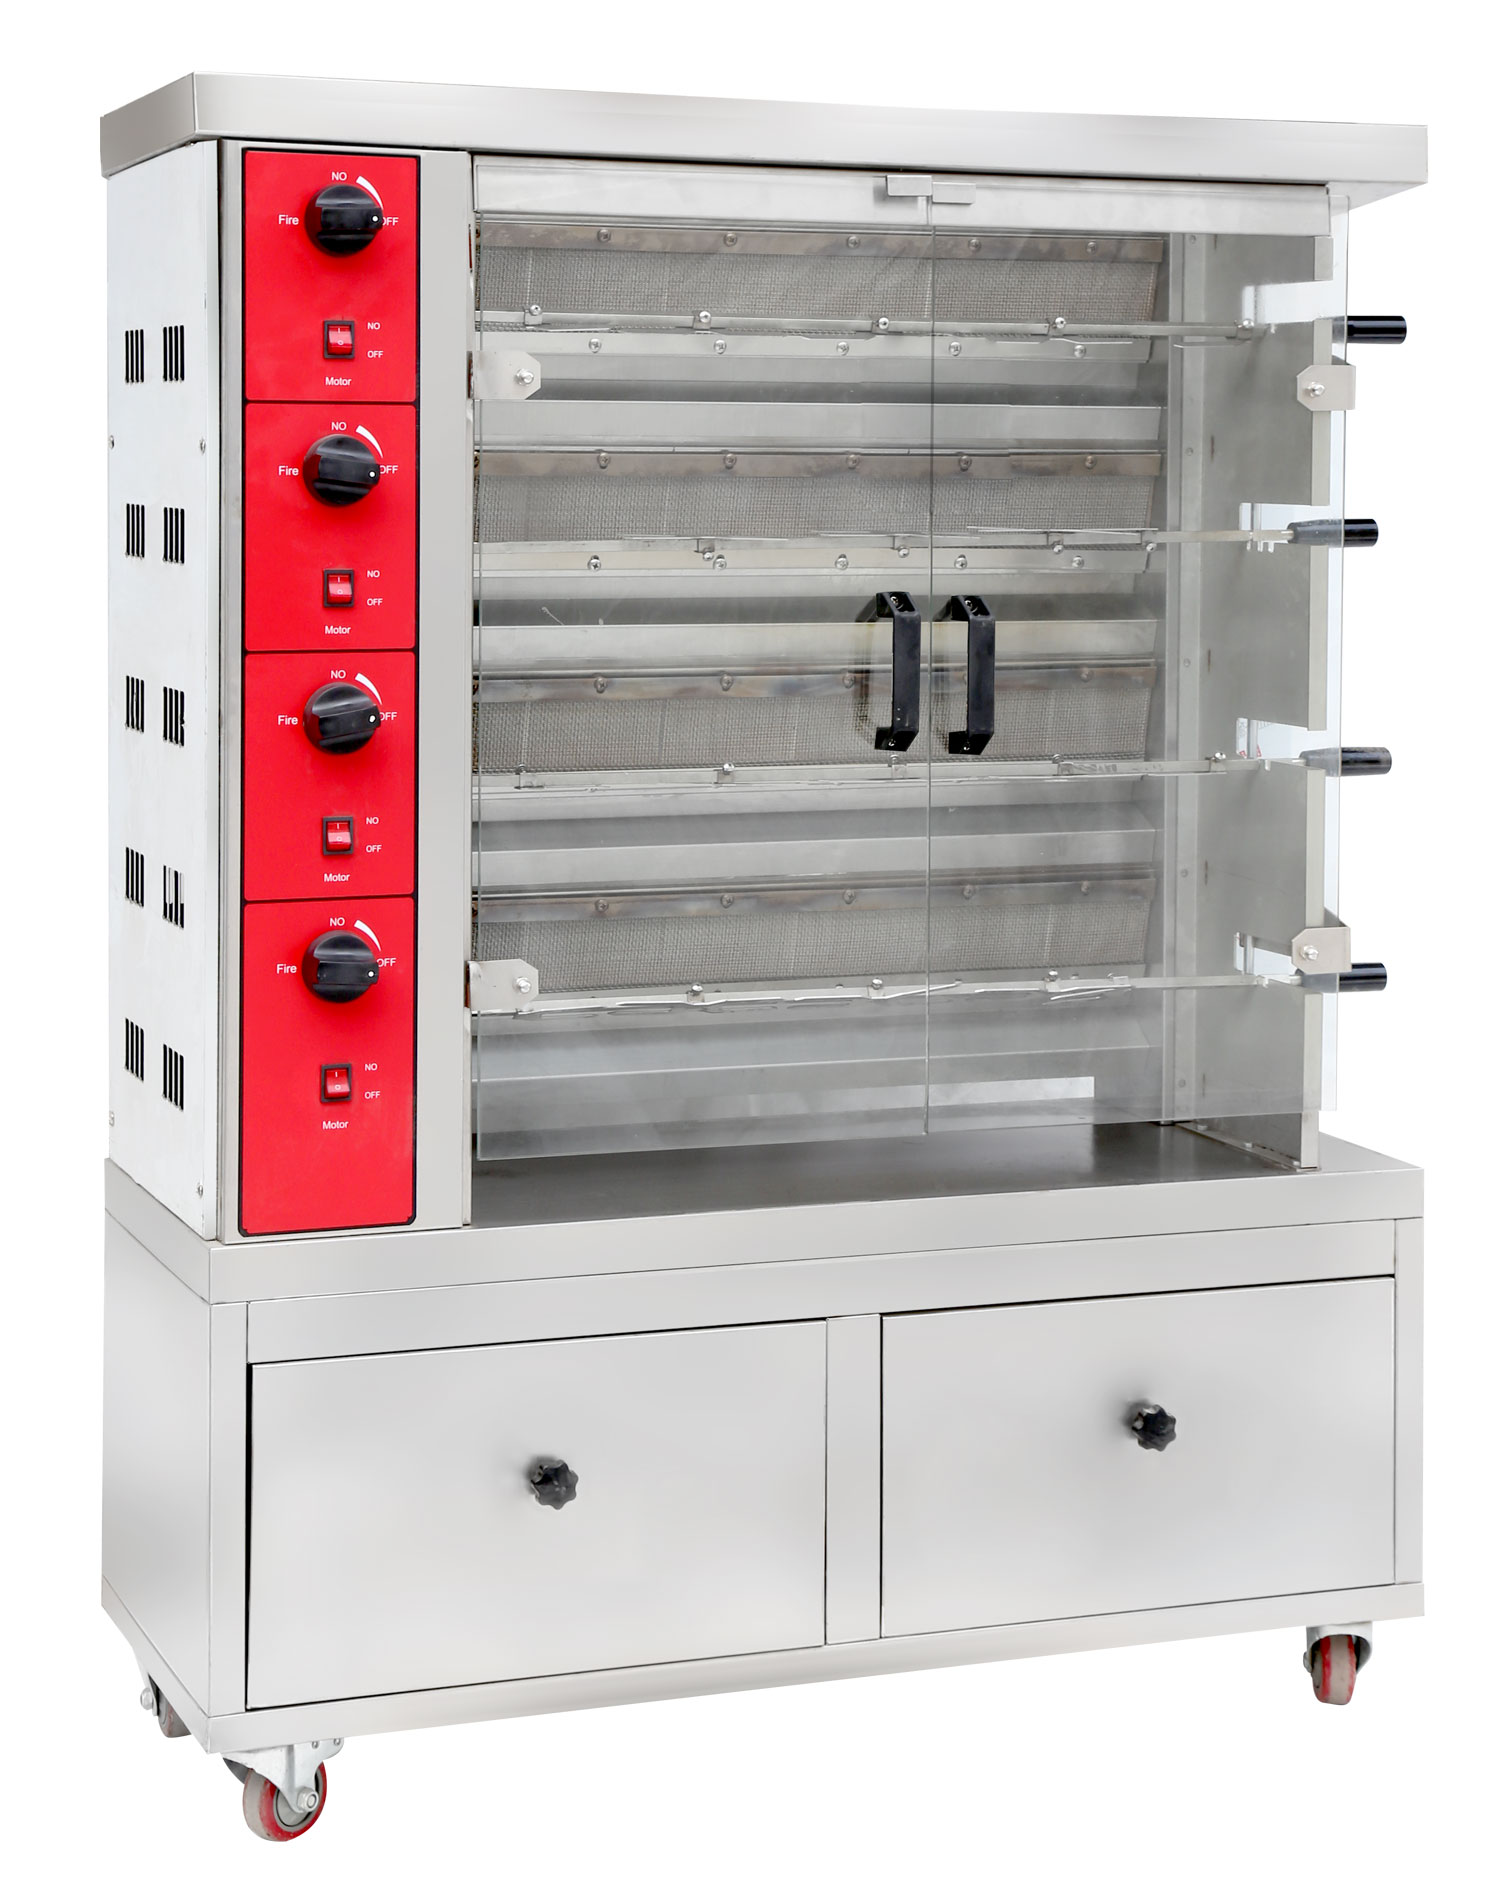 Quality Stainless Steel Vertical Gas Chicken Rotisserie With 3-Layer Rotisserie Oven For Chickens